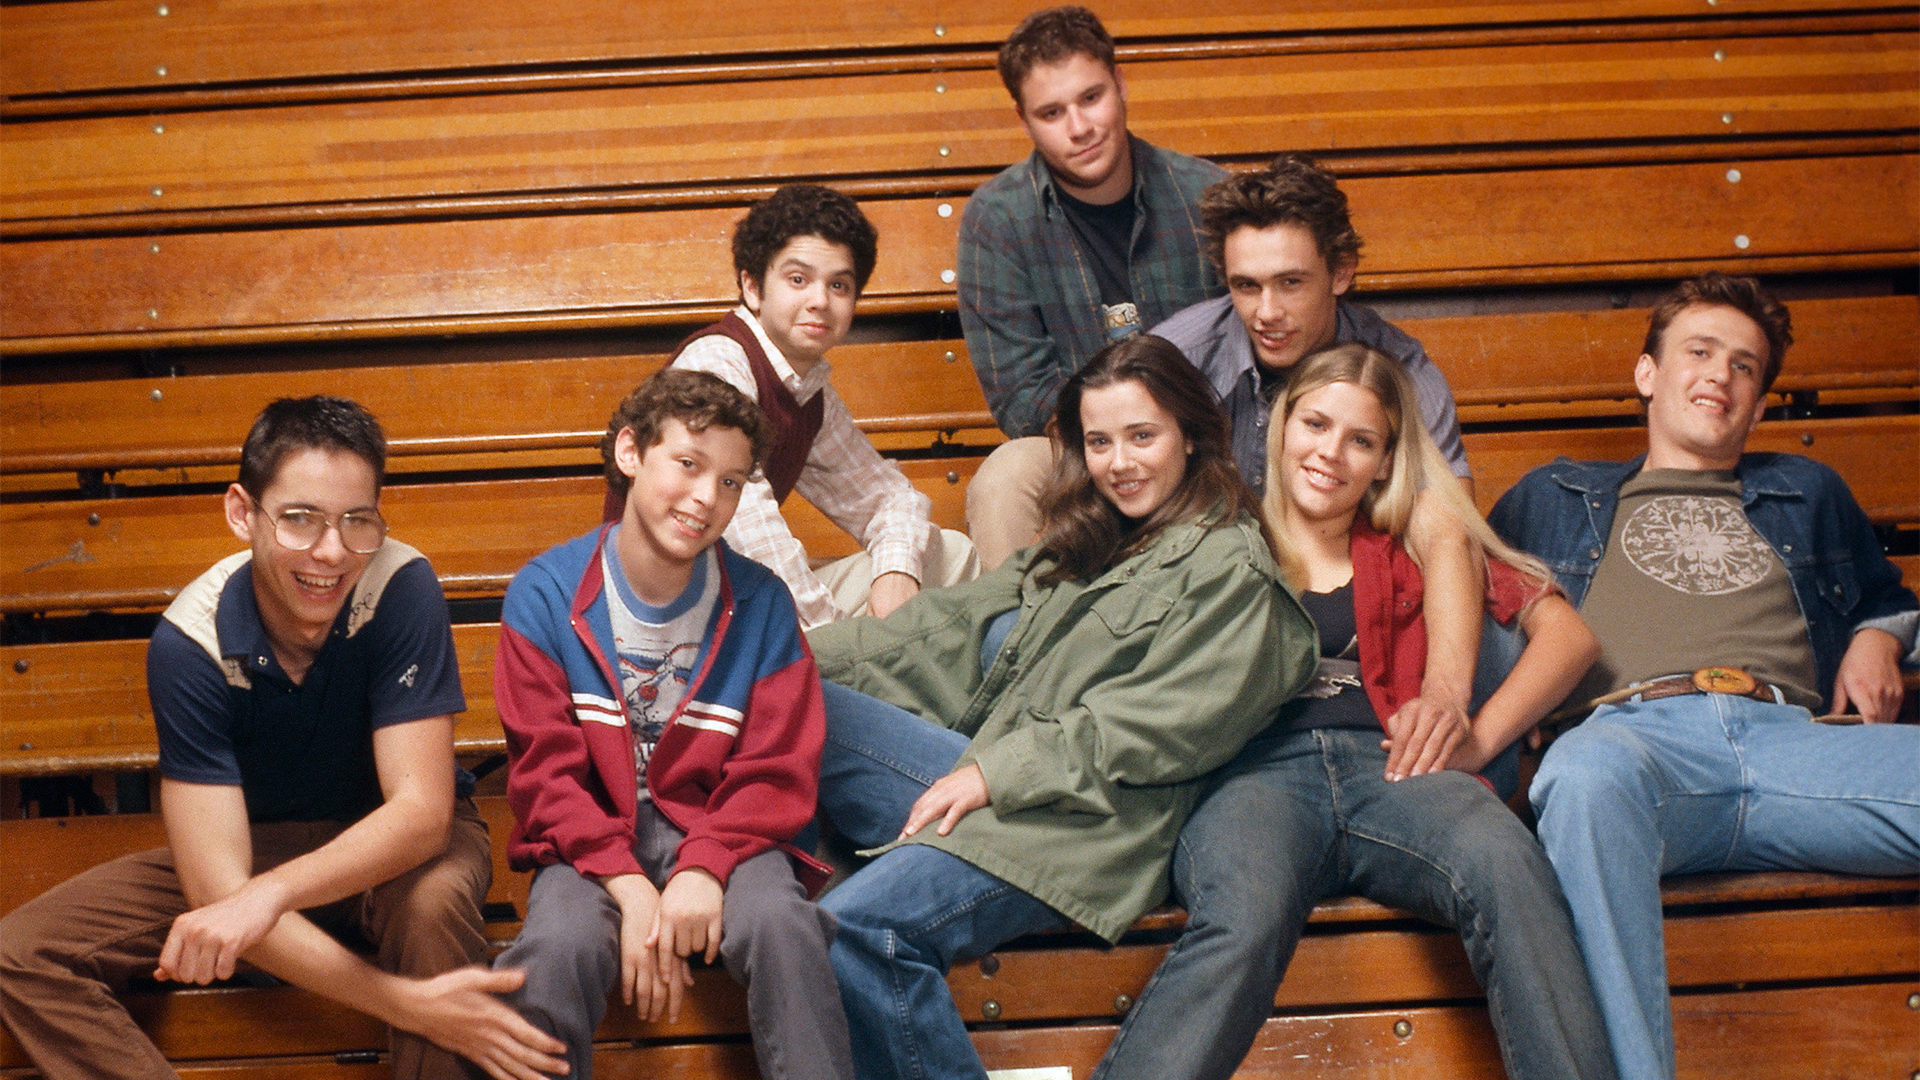 Freaks and Geeks - About the Show